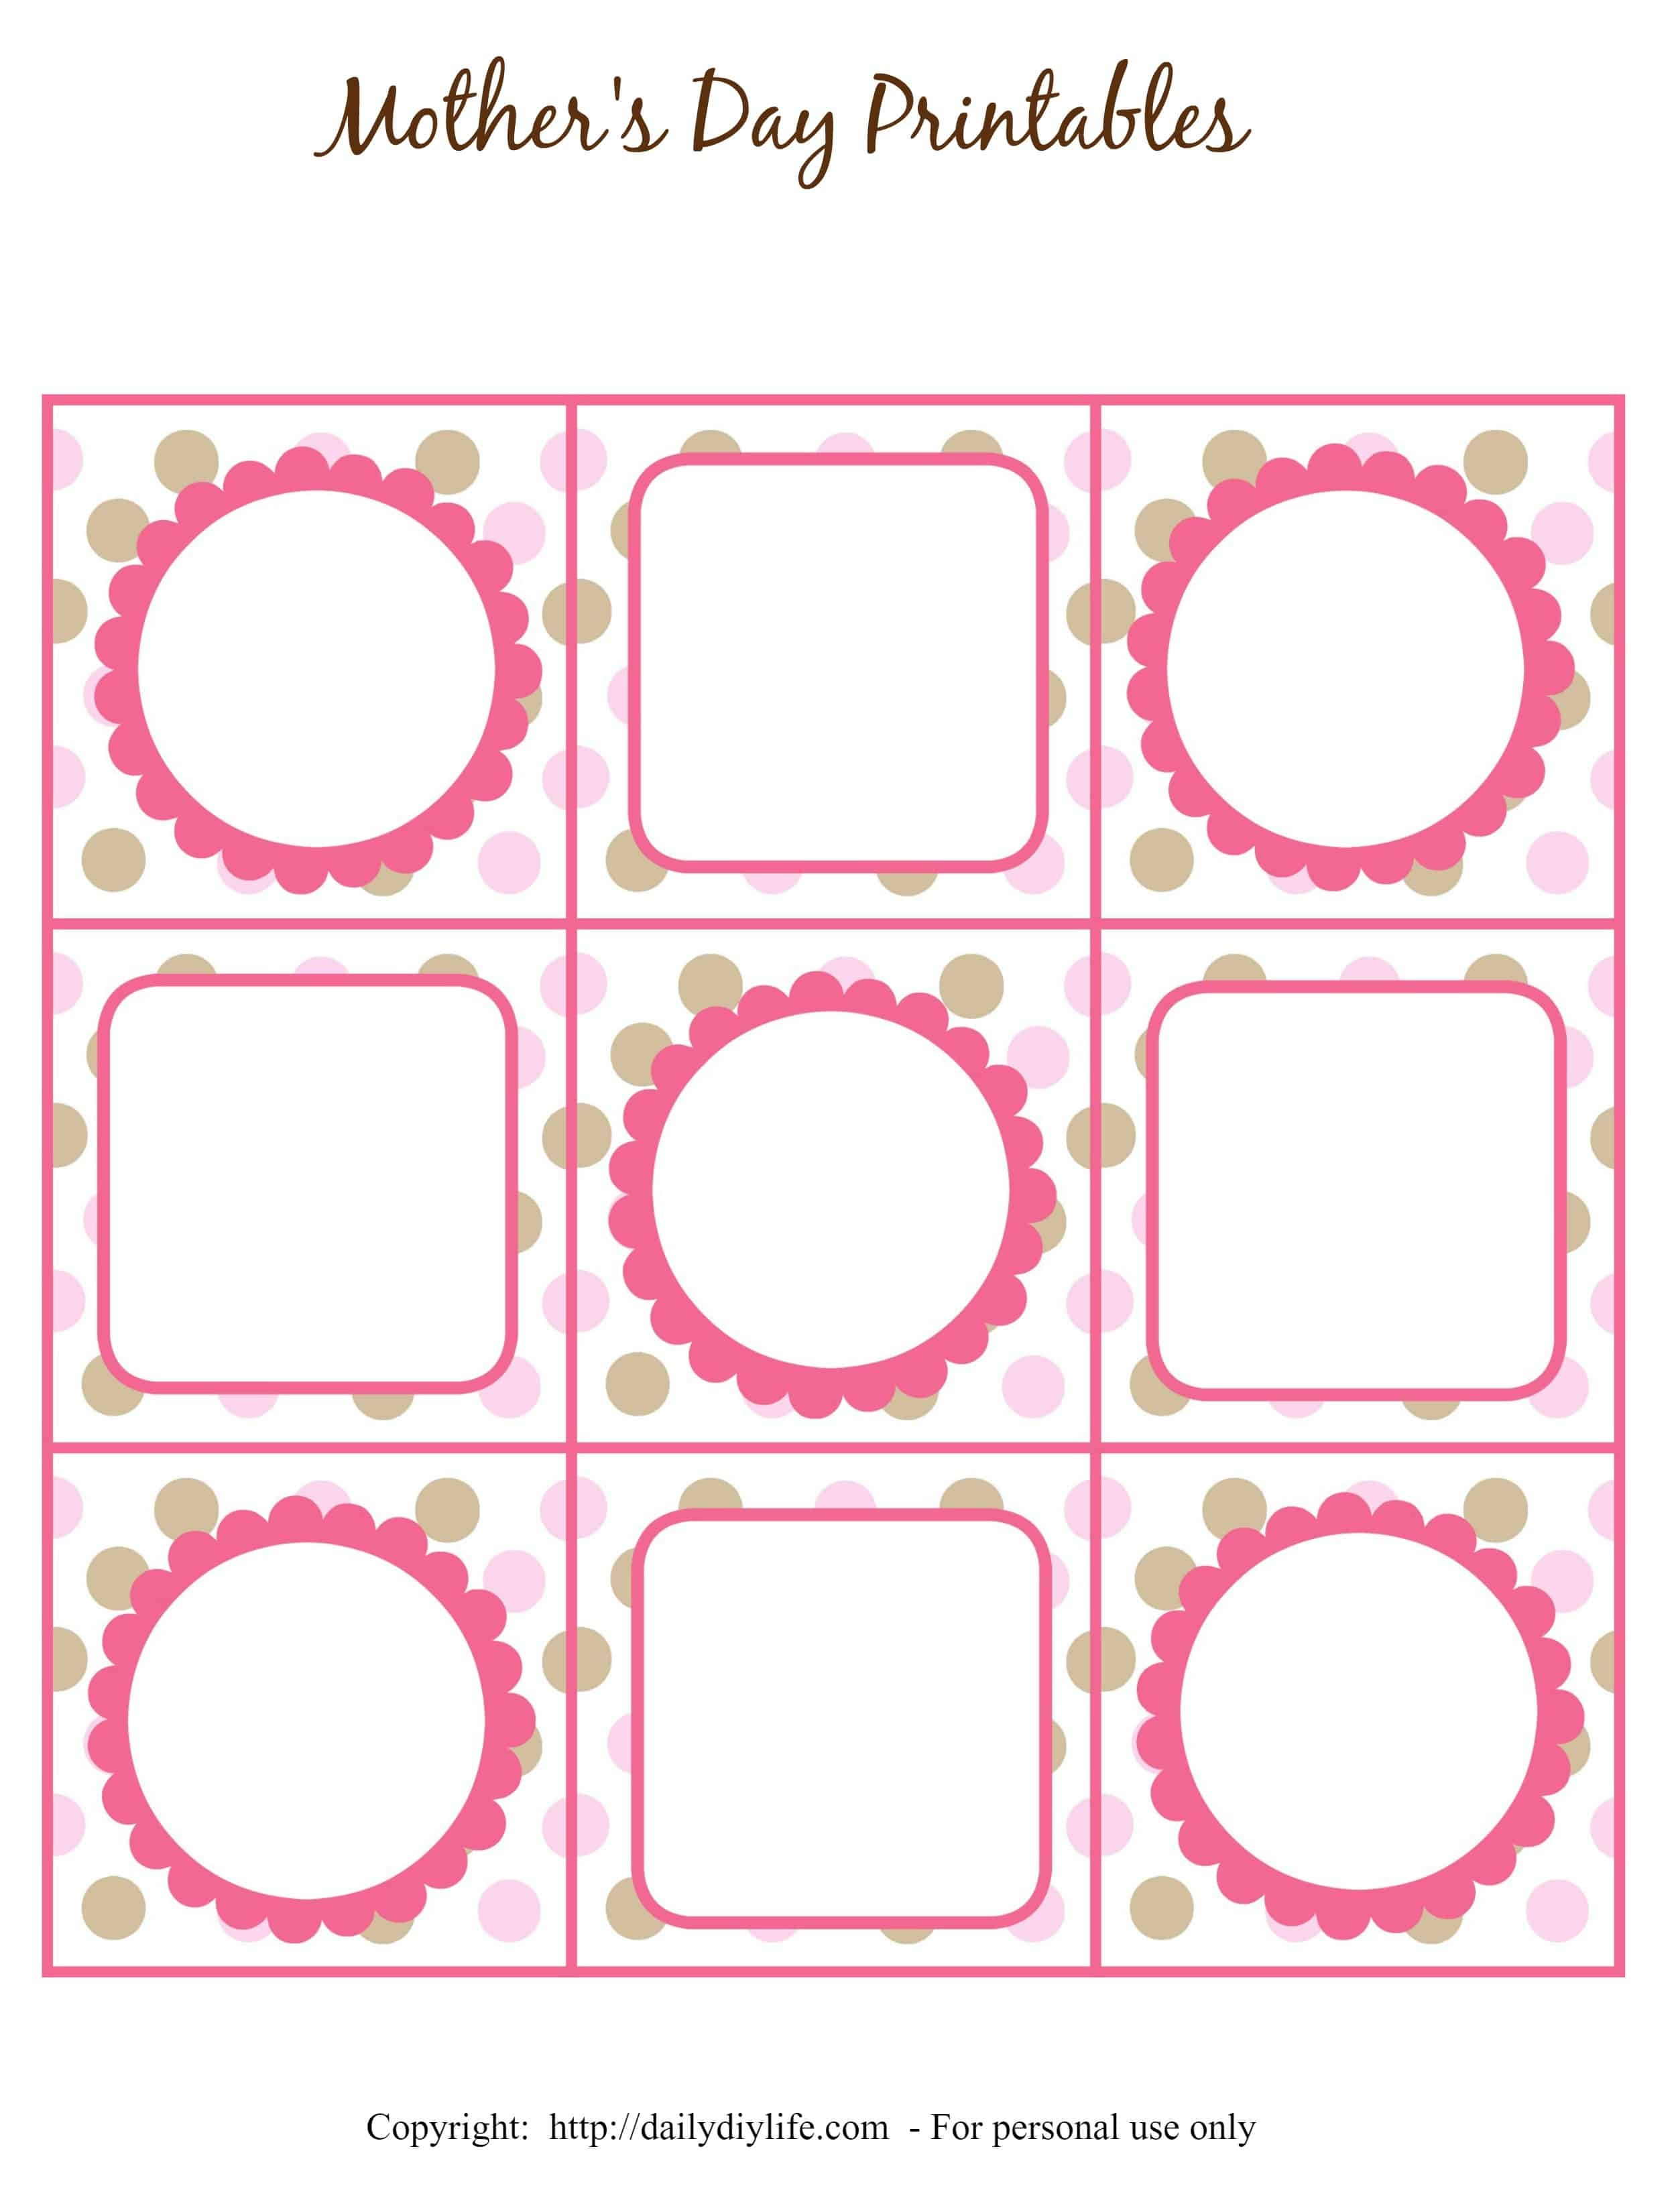 Amazing Free Printable Gift Tag Templates Template Ideas Blank Pdf - Free Printable Blank Gift Tags